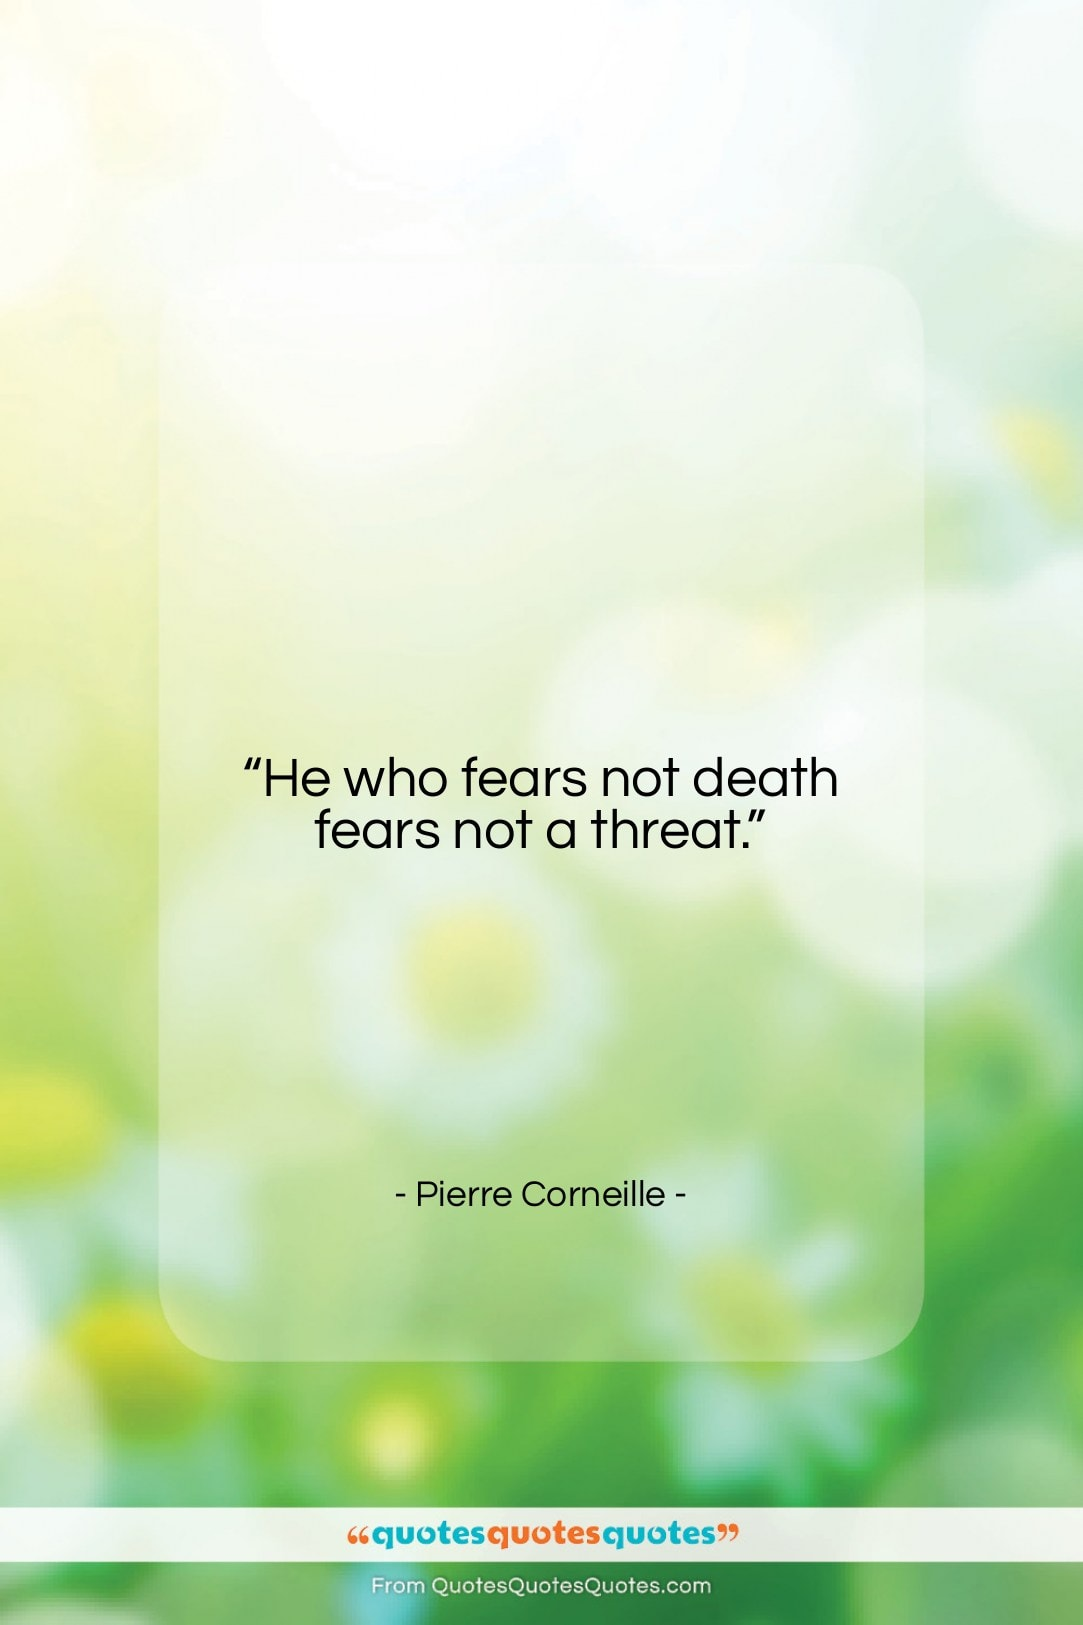 """Pierre Corneille quote: """"He who fears not death fears not…""""- at QuotesQuotesQuotes.com"""